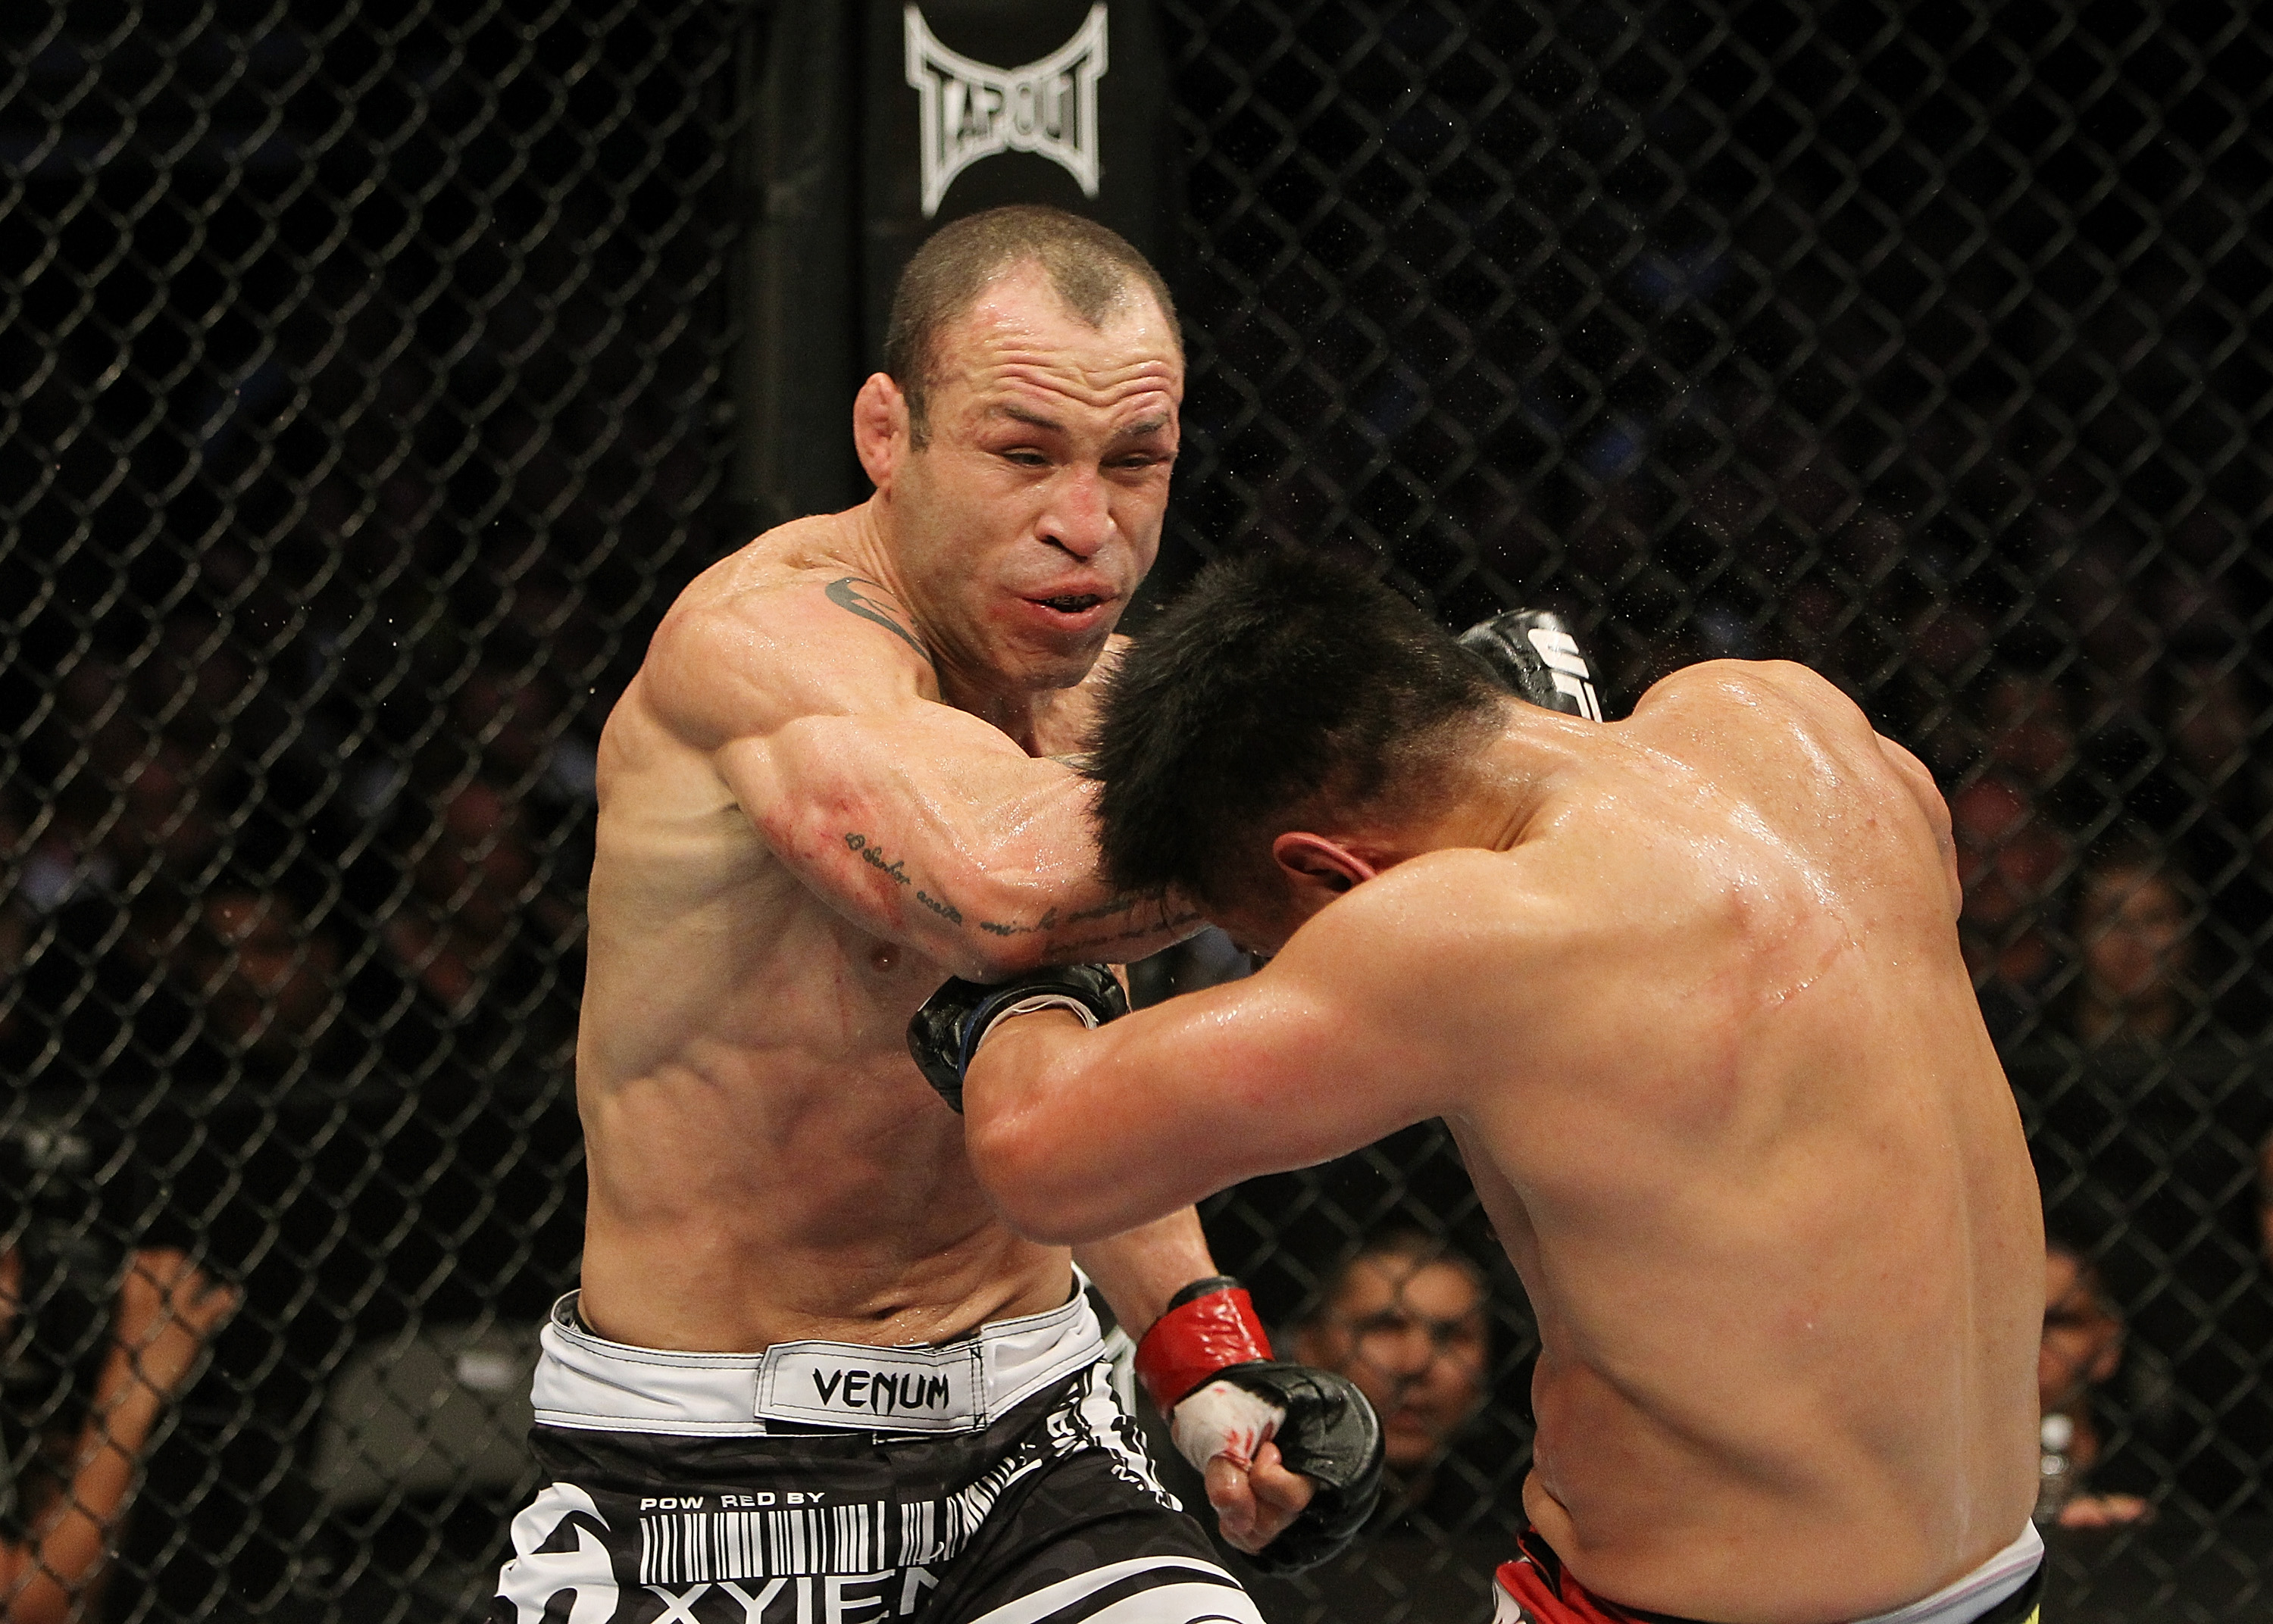 SAN JOSE, CA - NOVEMBER 19: (L-R) Wanderlei Silva punches Cung Le during an UFC Middleweight bout at the HP Pavillion on November 19, 2011 in San Jose, California.  (Photo by Josh Hedges/Zuffa LLC/Zuffa LLC via Getty Images)